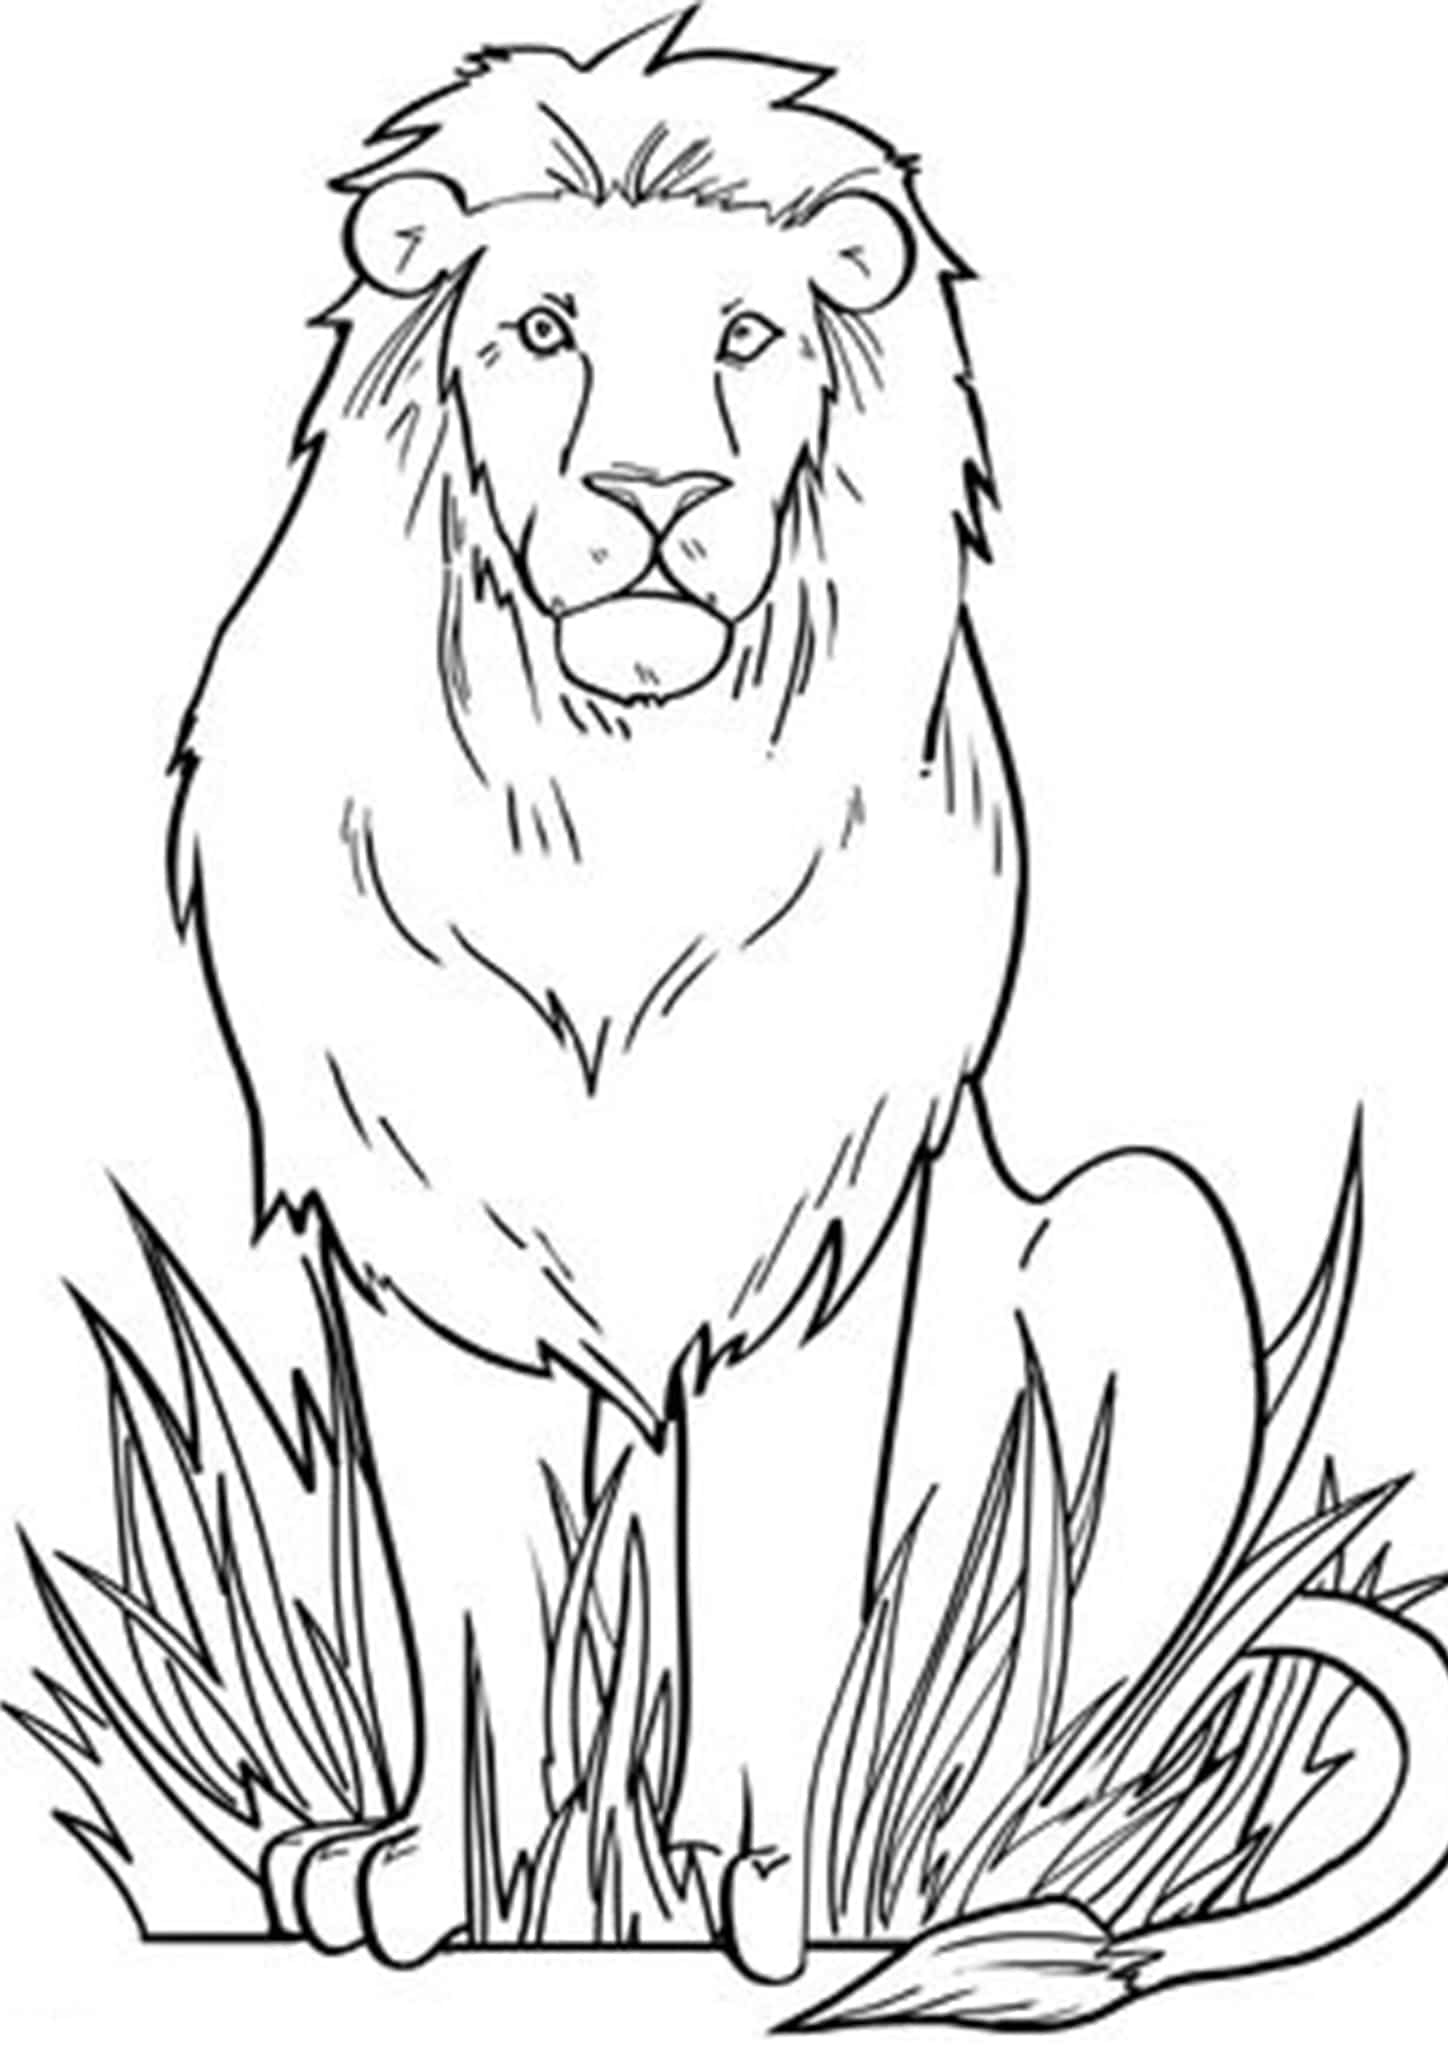 colouring images of lion lion cartoon drawing at getdrawings free download of lion images colouring